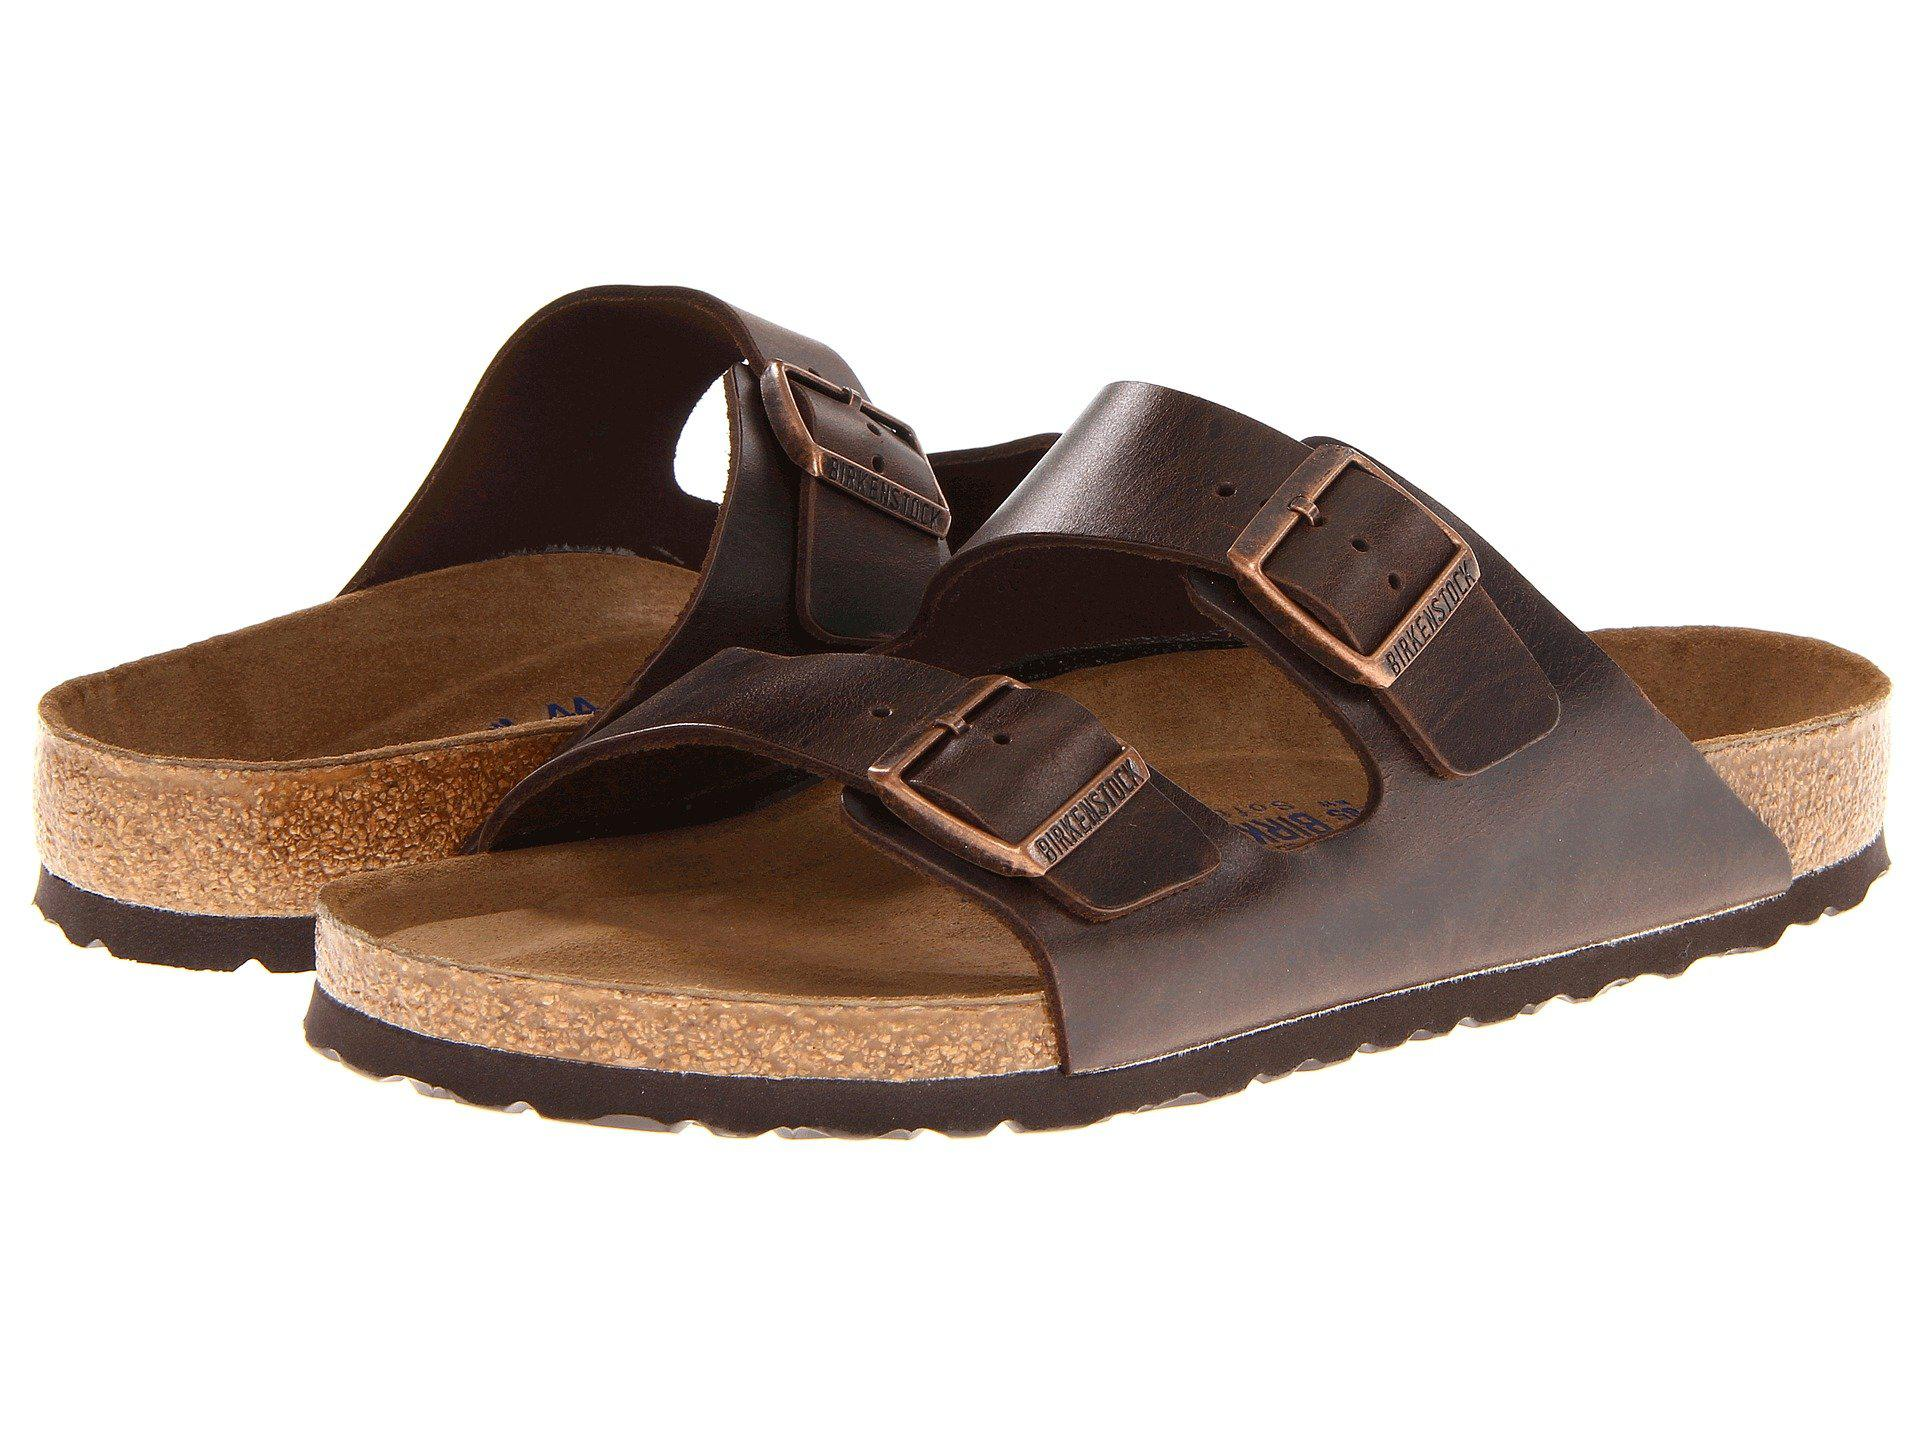 dc00e5ca858e Birkenstock - Arizona Soft Footbed - Leather (unisex) (brown Amalfi Leather)  Sandals. View fullscreen